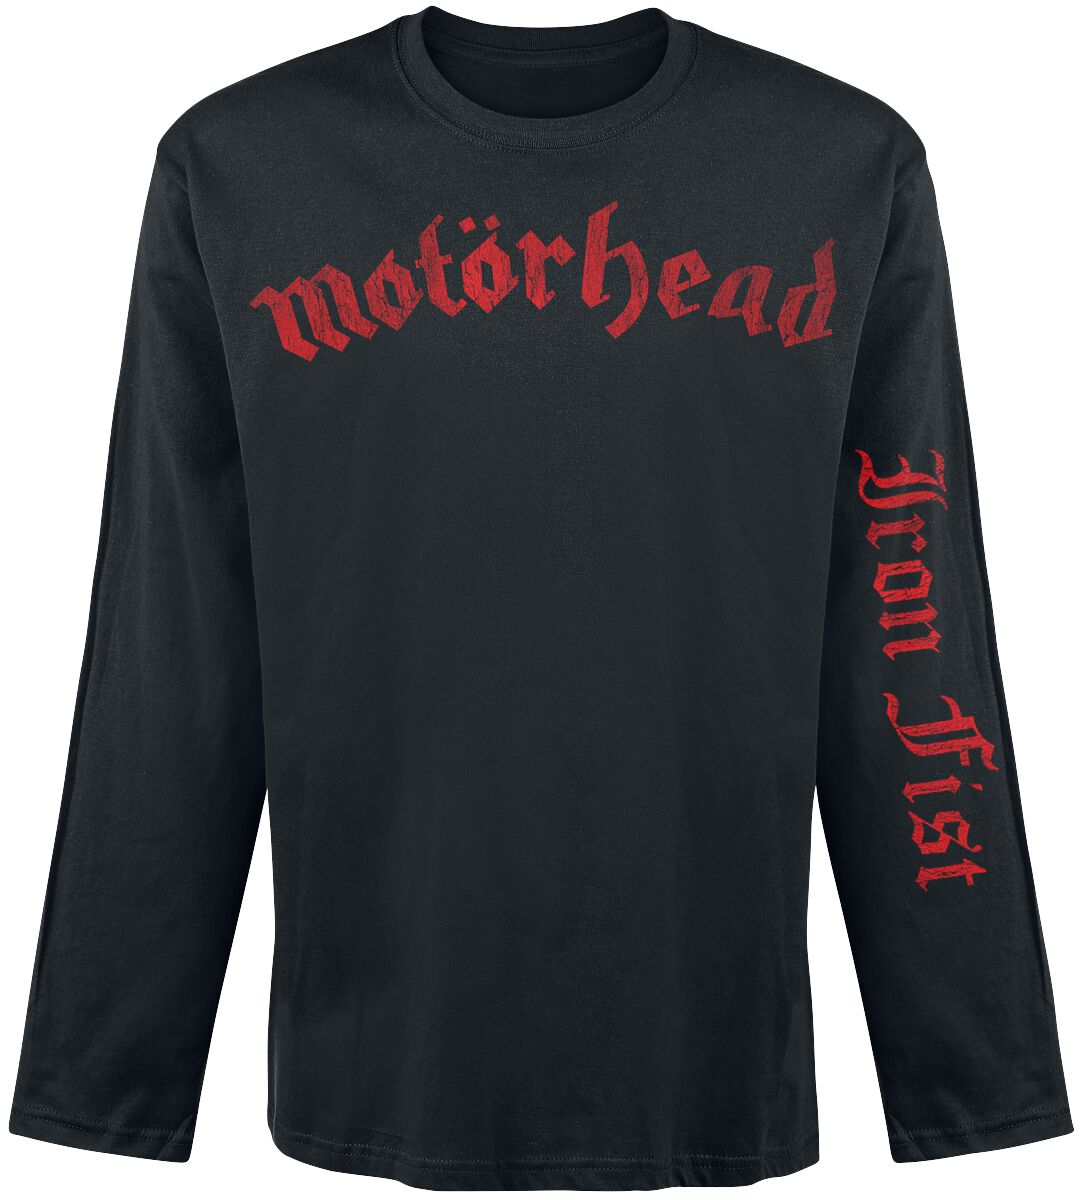 Image of   Motörhead Iron fist Langærmet sort